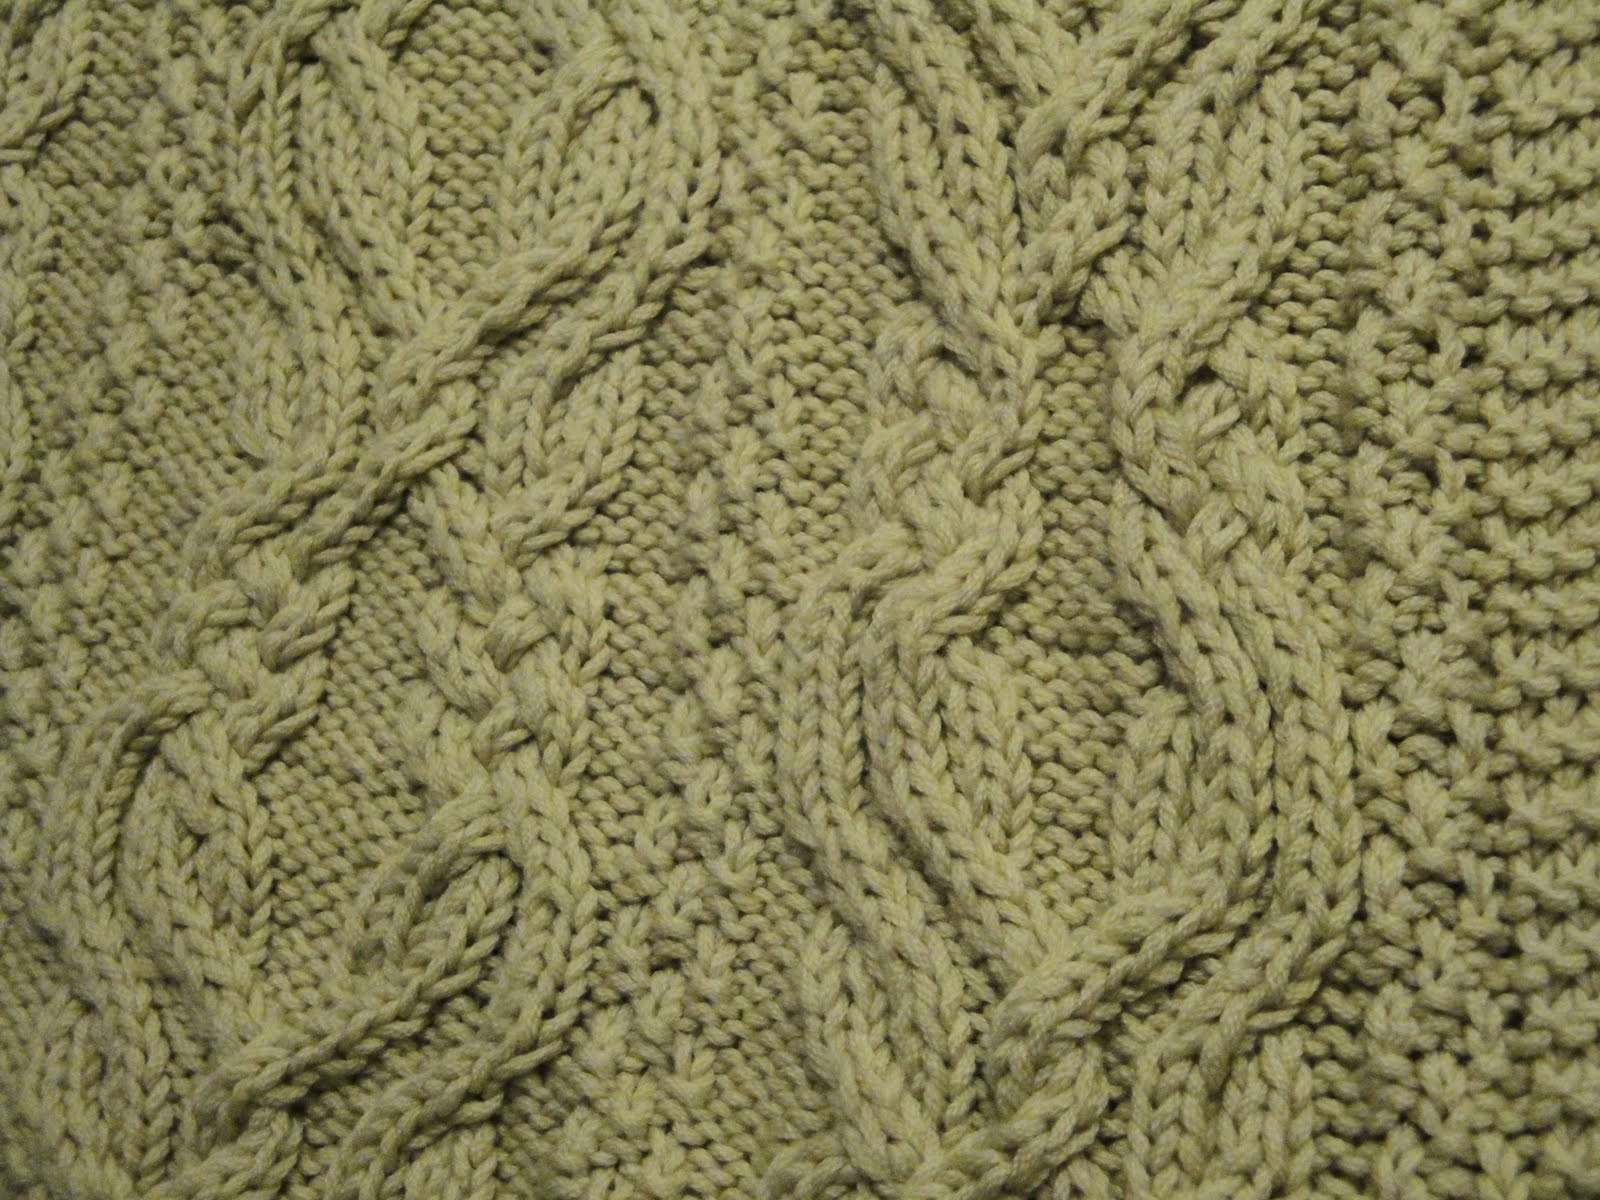 Crocheting Cables : Free Crochet Cable Afghan Pattern